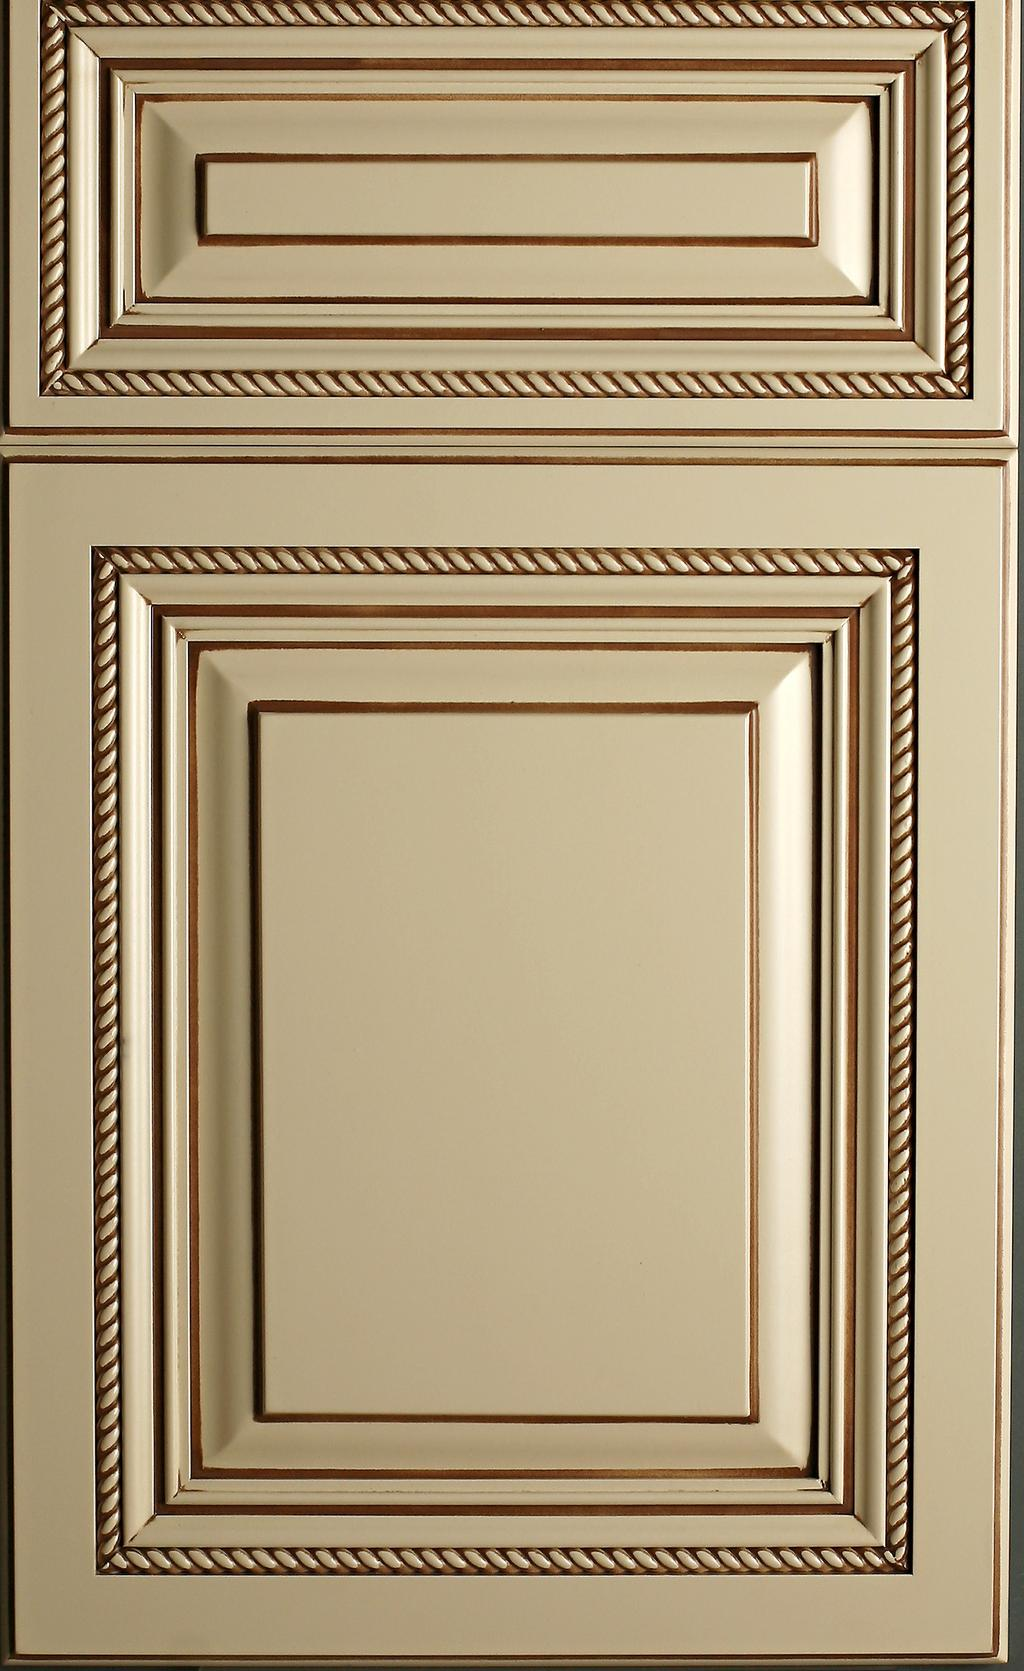 Cabinet Painting Pricing and Quotes - 2 Cabinet Girls